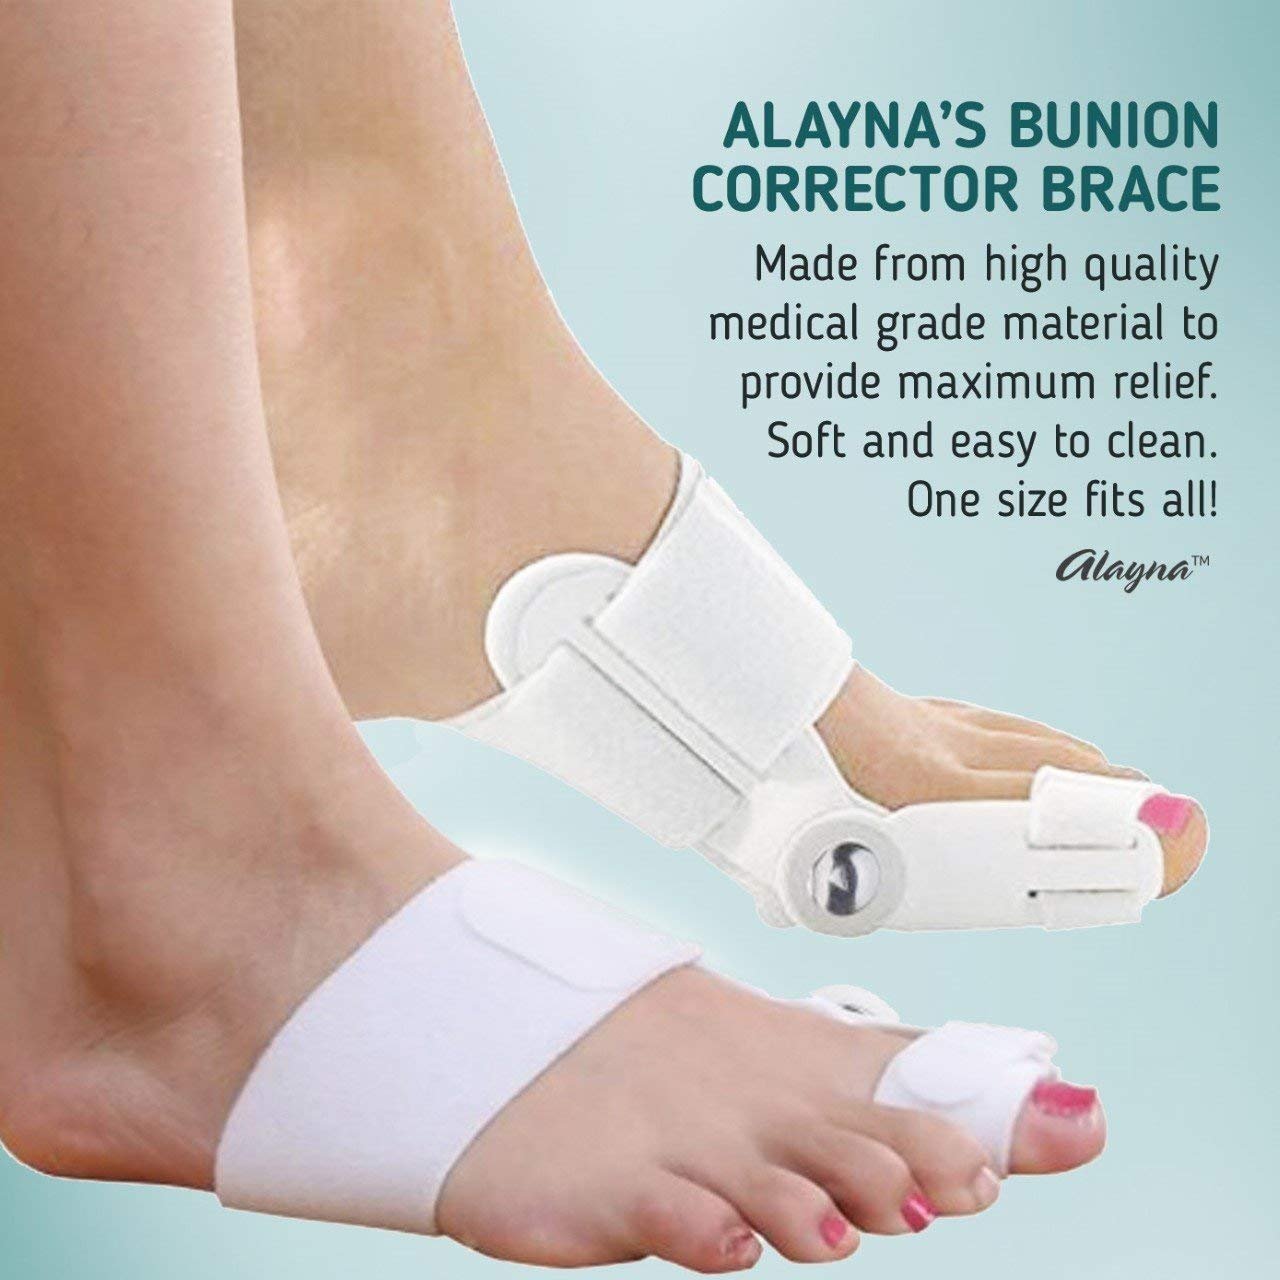 Bunion Corrector and Bunion Relief Orthopedic Bunion Splint Pads for Men and Women Hammer Toe Straightener and Bunion Protector Cushions- Relieve Hallux Valgus Foot Pain and Soothe Sore Bunions by Alayna (Image #6)